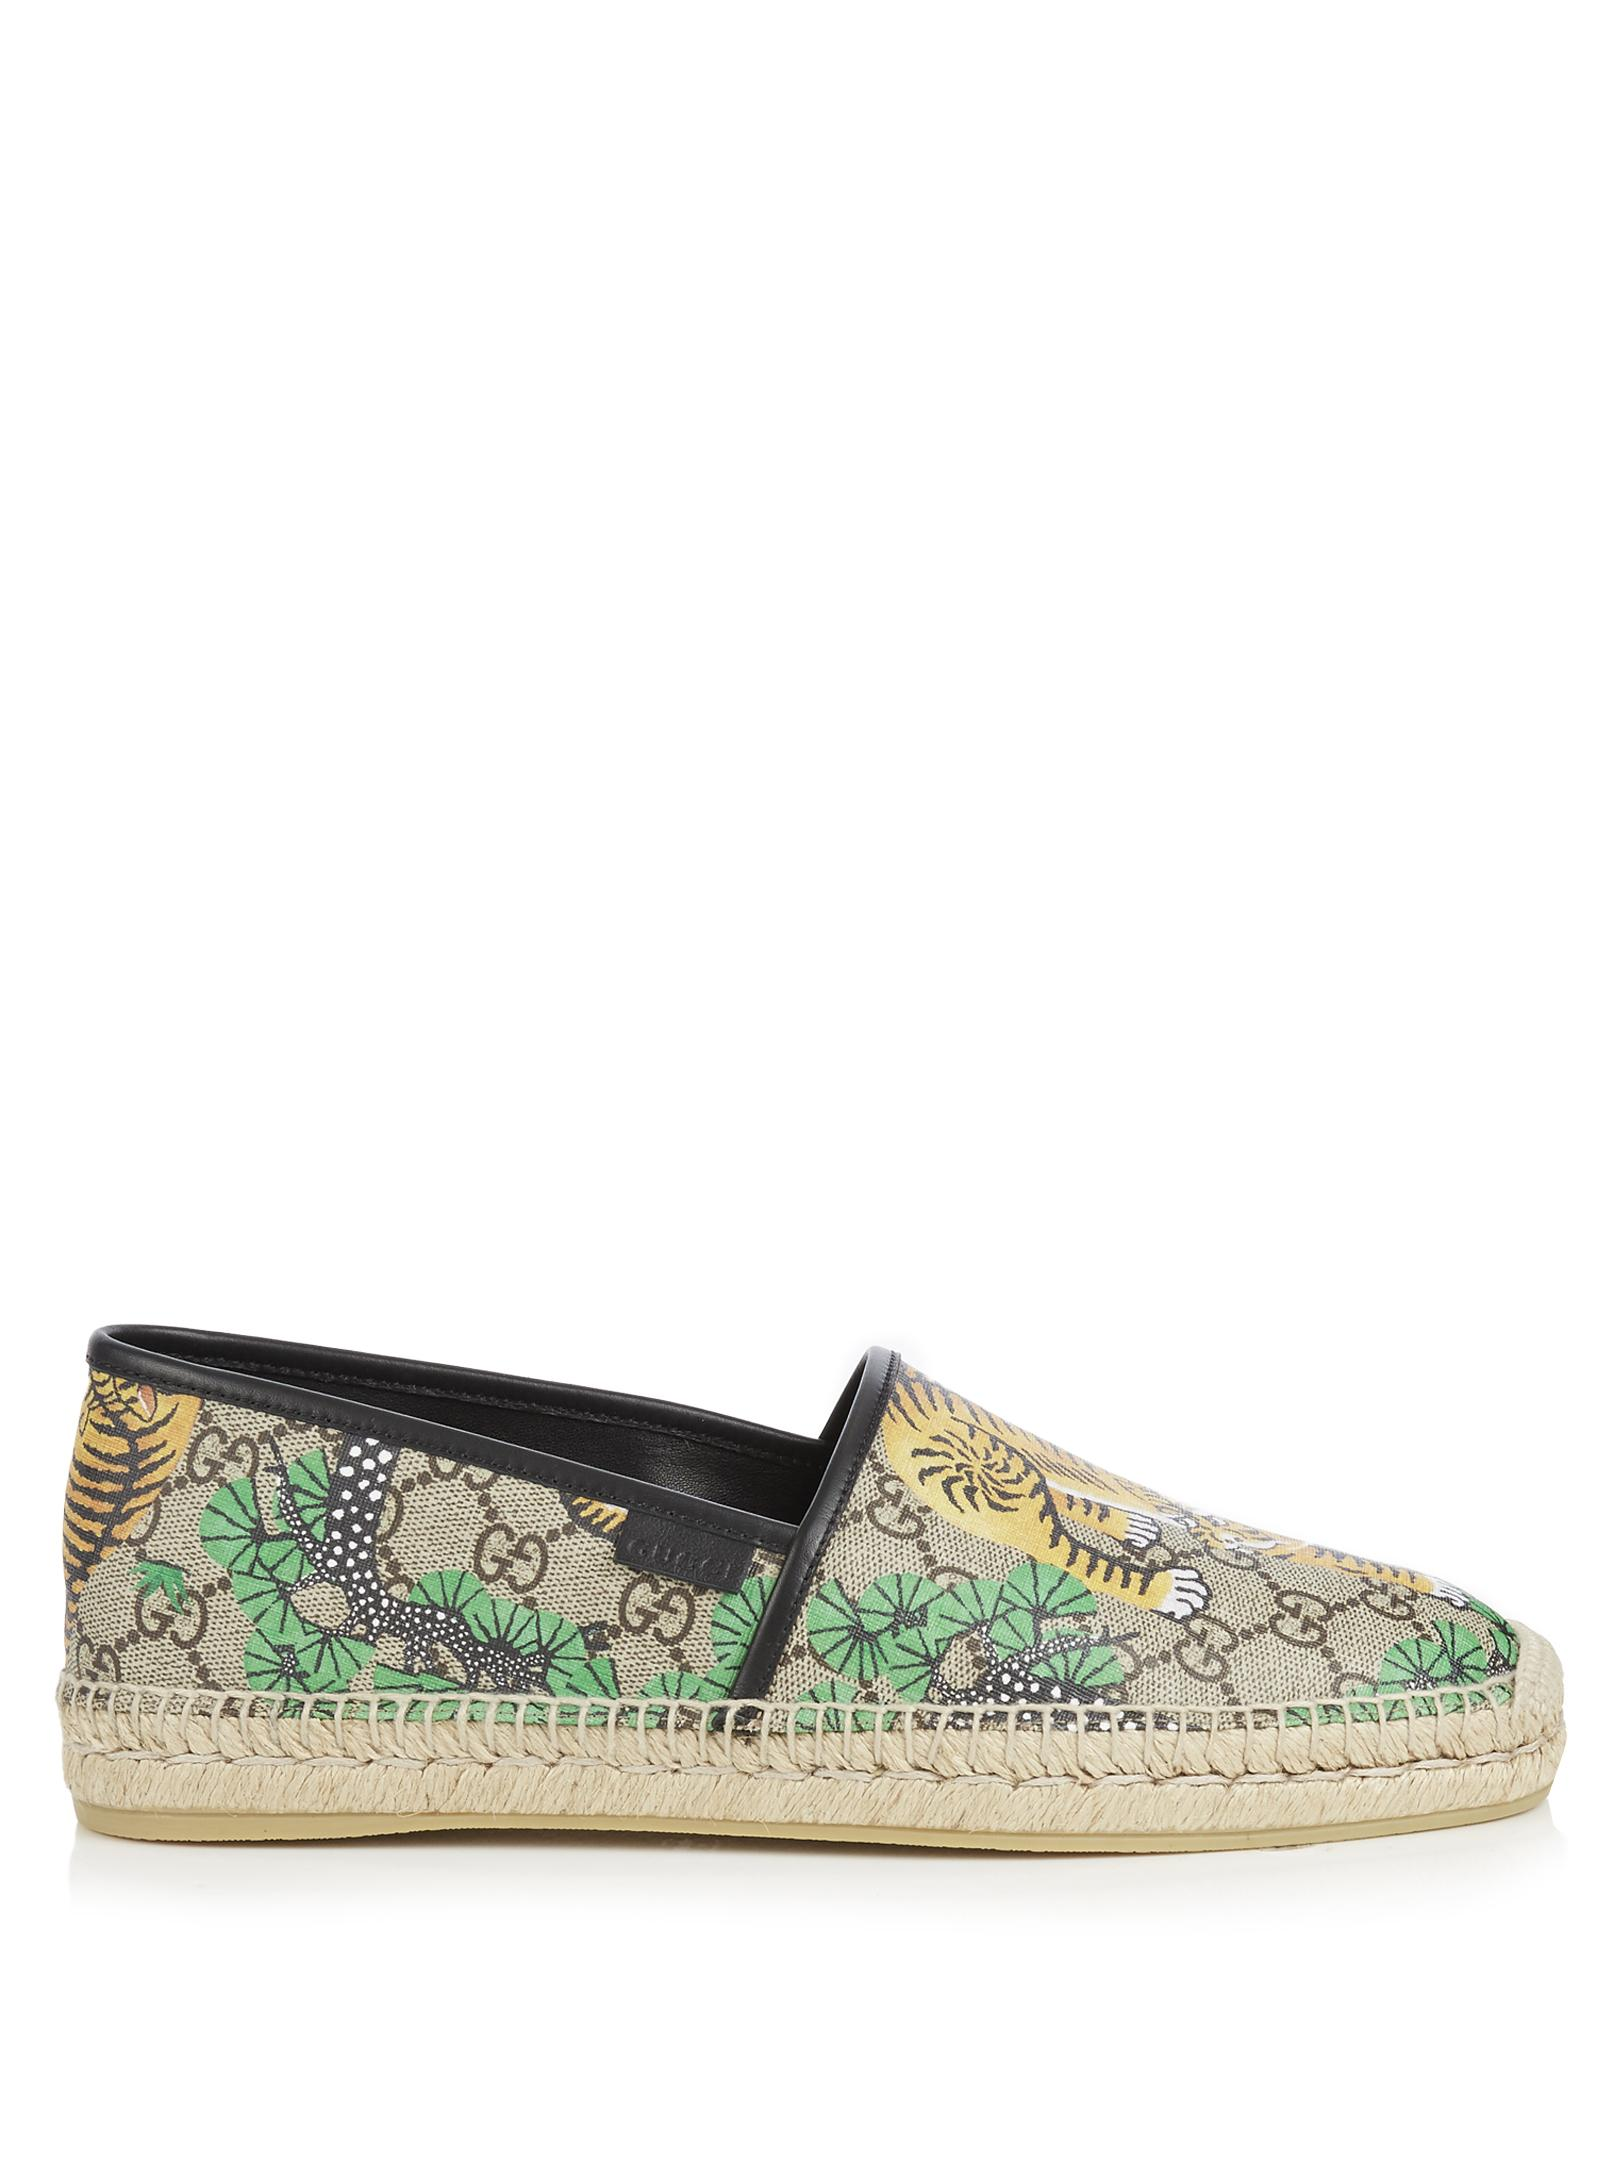 Armani Shoes Canvas Slip On Espadrilles